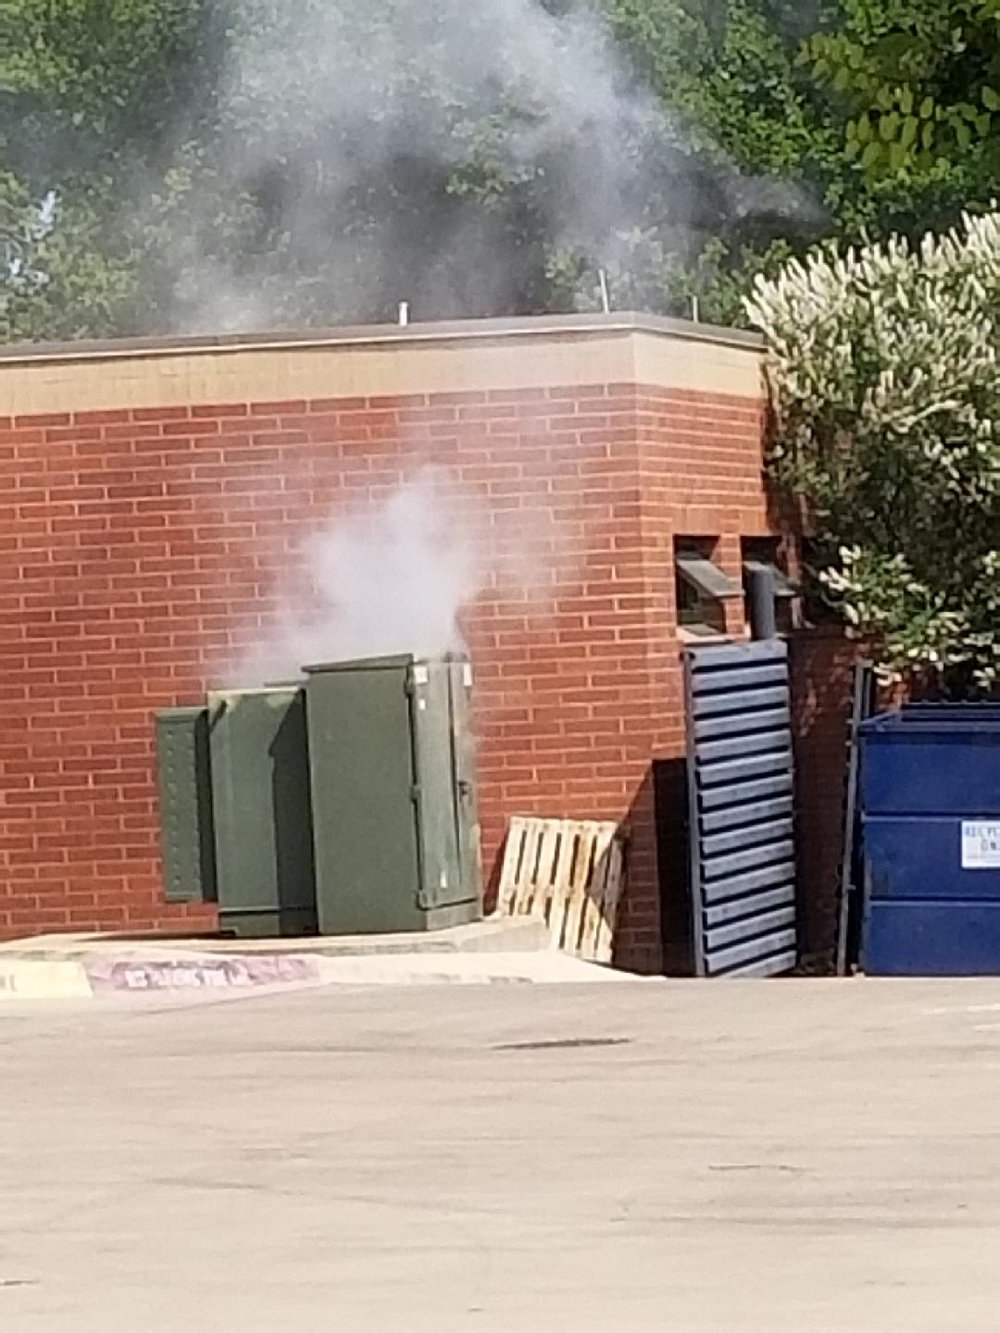 - Staff members at The Bridge noticed the smoking transformer in the parking lot off of Corsicana Street and were quick to alert Oncor and Dallas Fire-Rescue officials, but before help could arrive, the smoke turned to fire and eventually sparked an explosion.